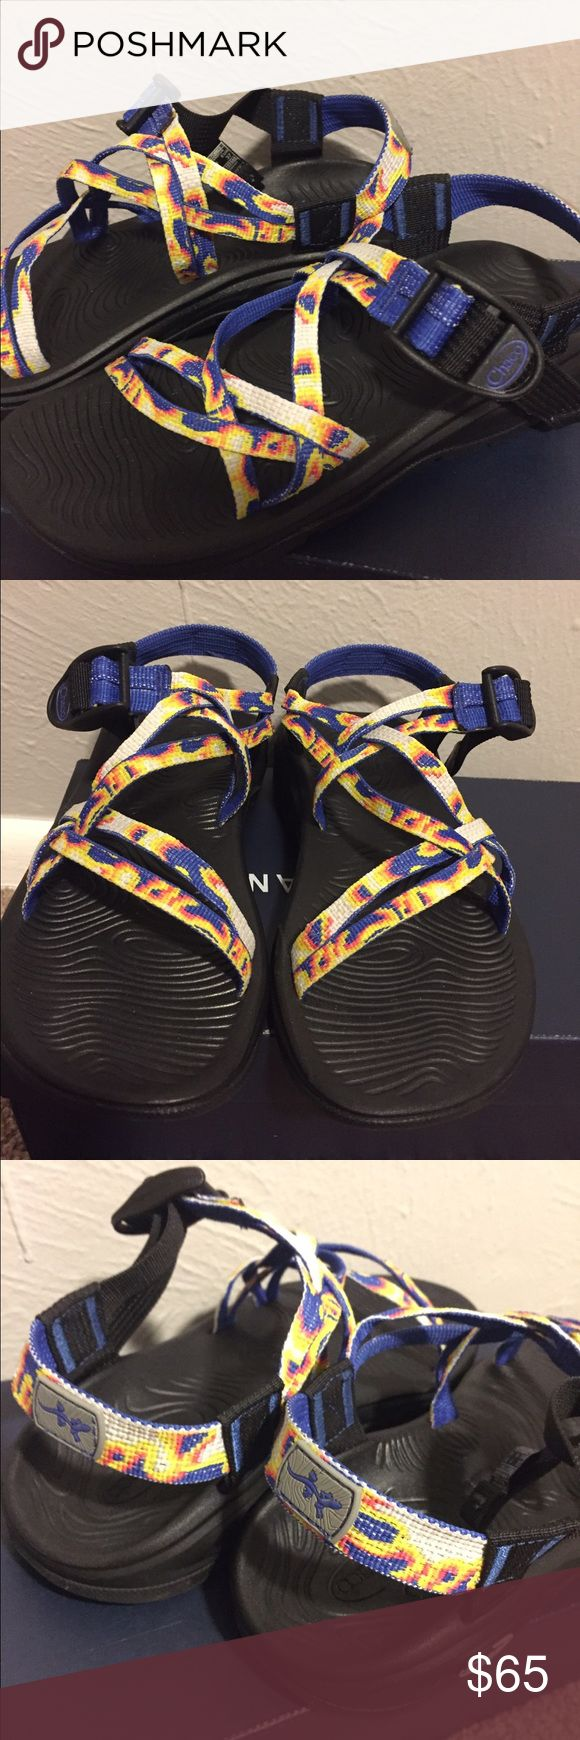 FLASH SALE⚡️⚡️NWOT Chacos Women's 6 Brand new without tags Chaco sandals size 6. Chaco Shoes Sandals